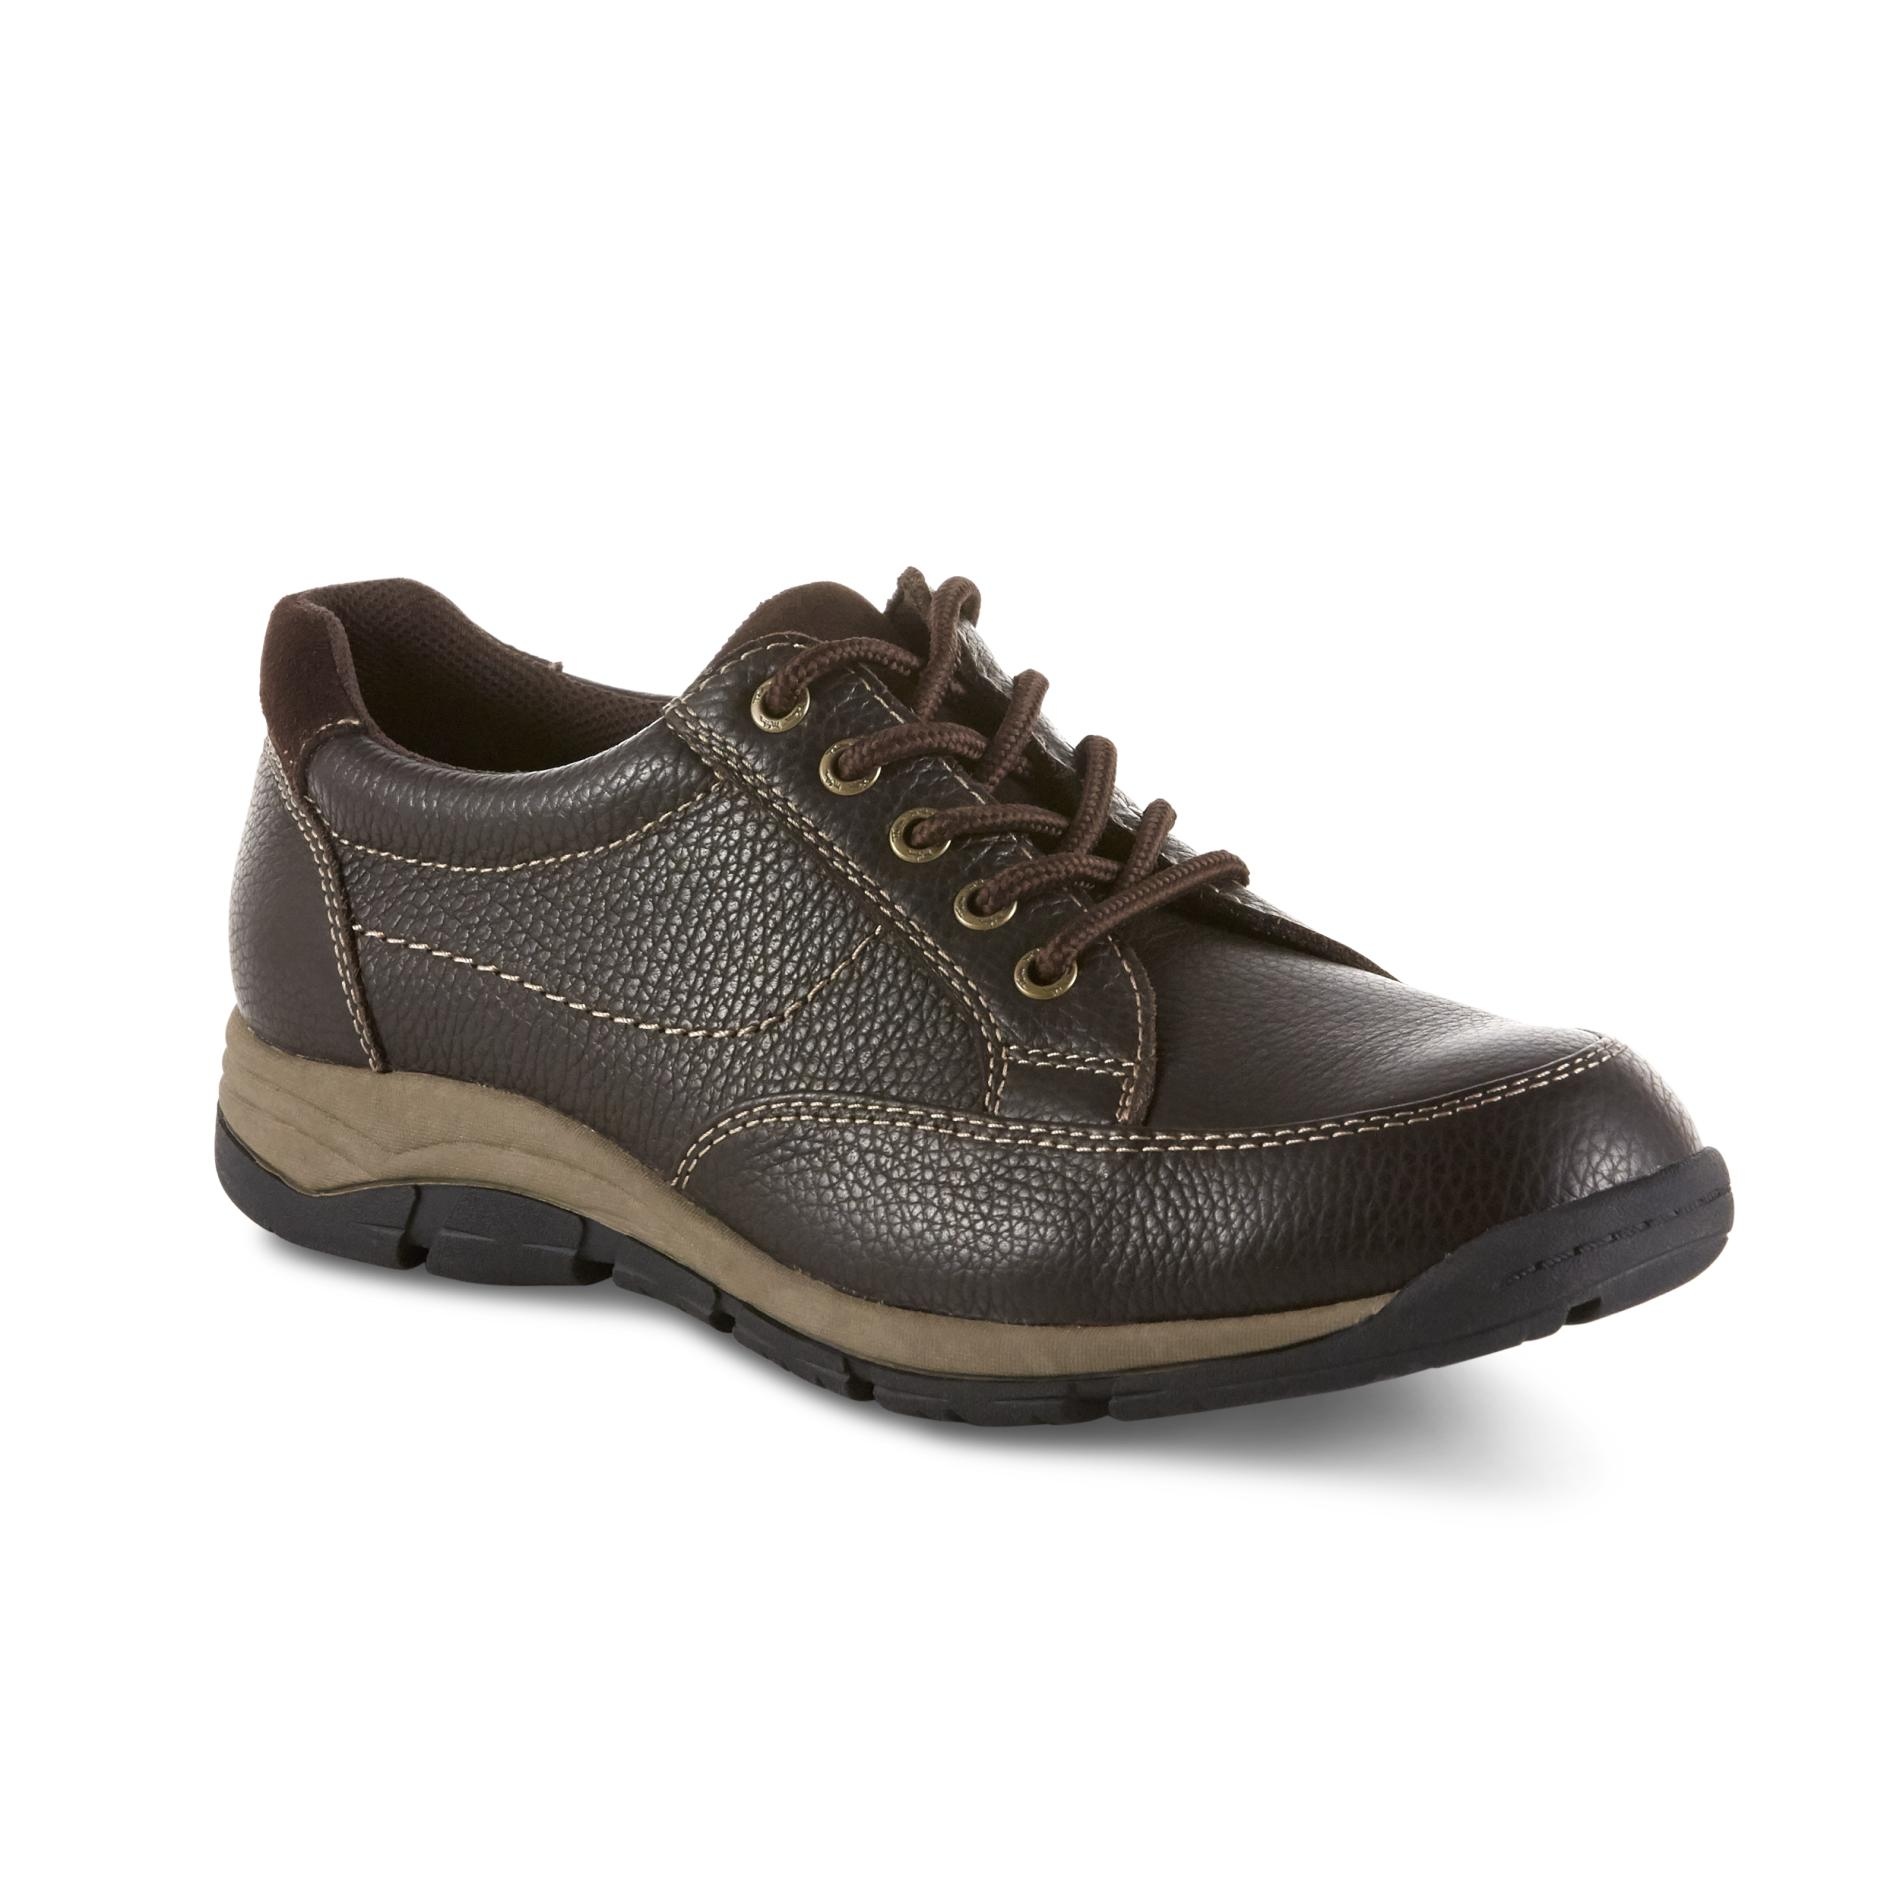 Men's Casual Shoes - Sears